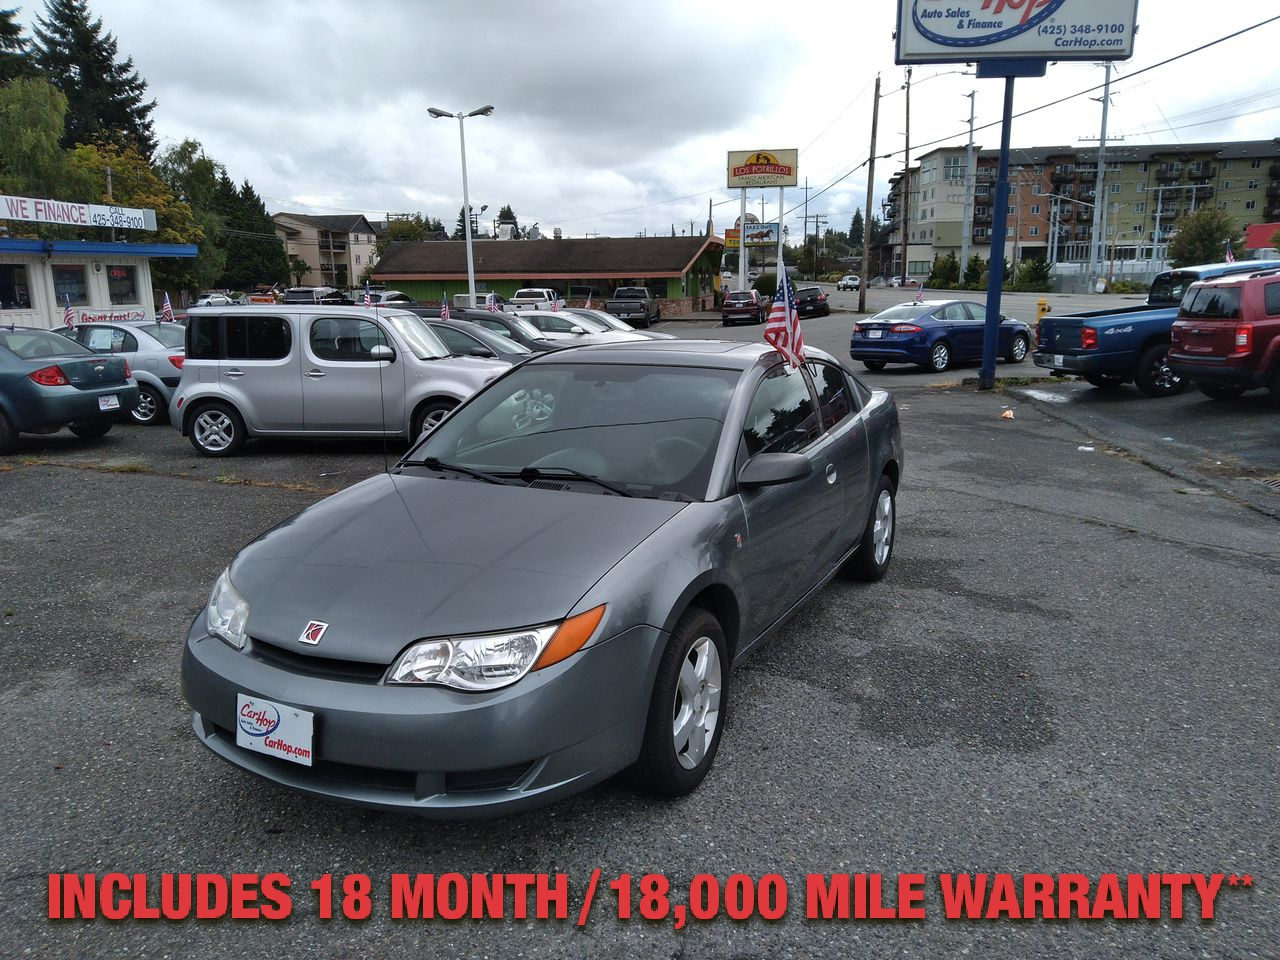 Pre-Owned 2007 SATURN ION 2 Quad Cou